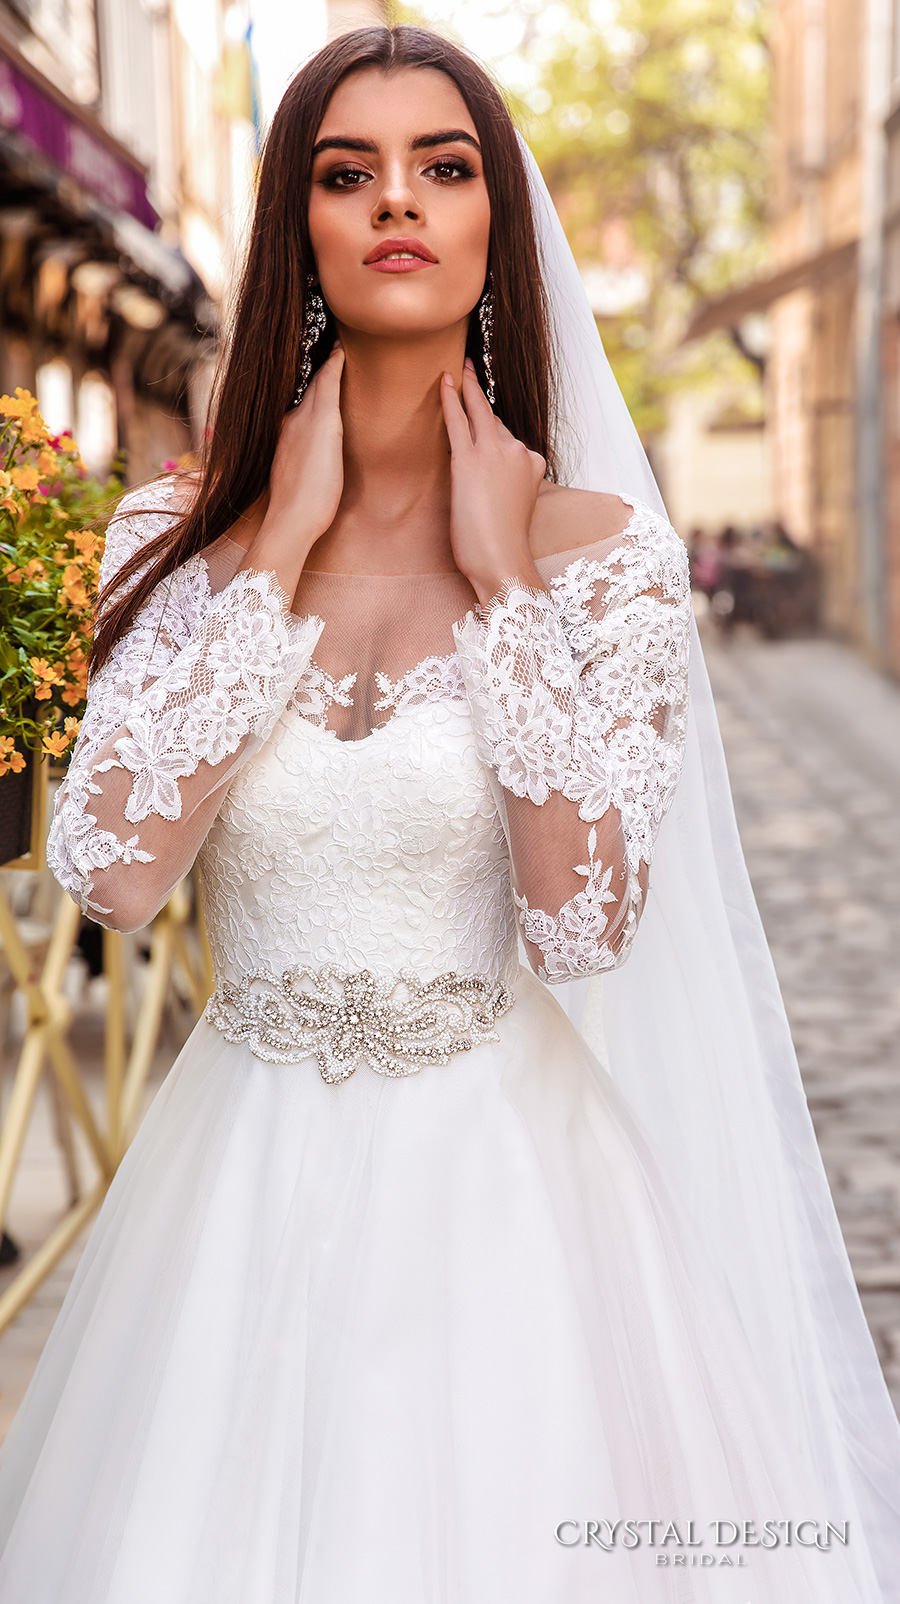 crystal design bridal 2016 sheer long sleeves sweetheart neckline heavily embellished bodice belt princess ball gown wedding dress chapel train (modena) zv